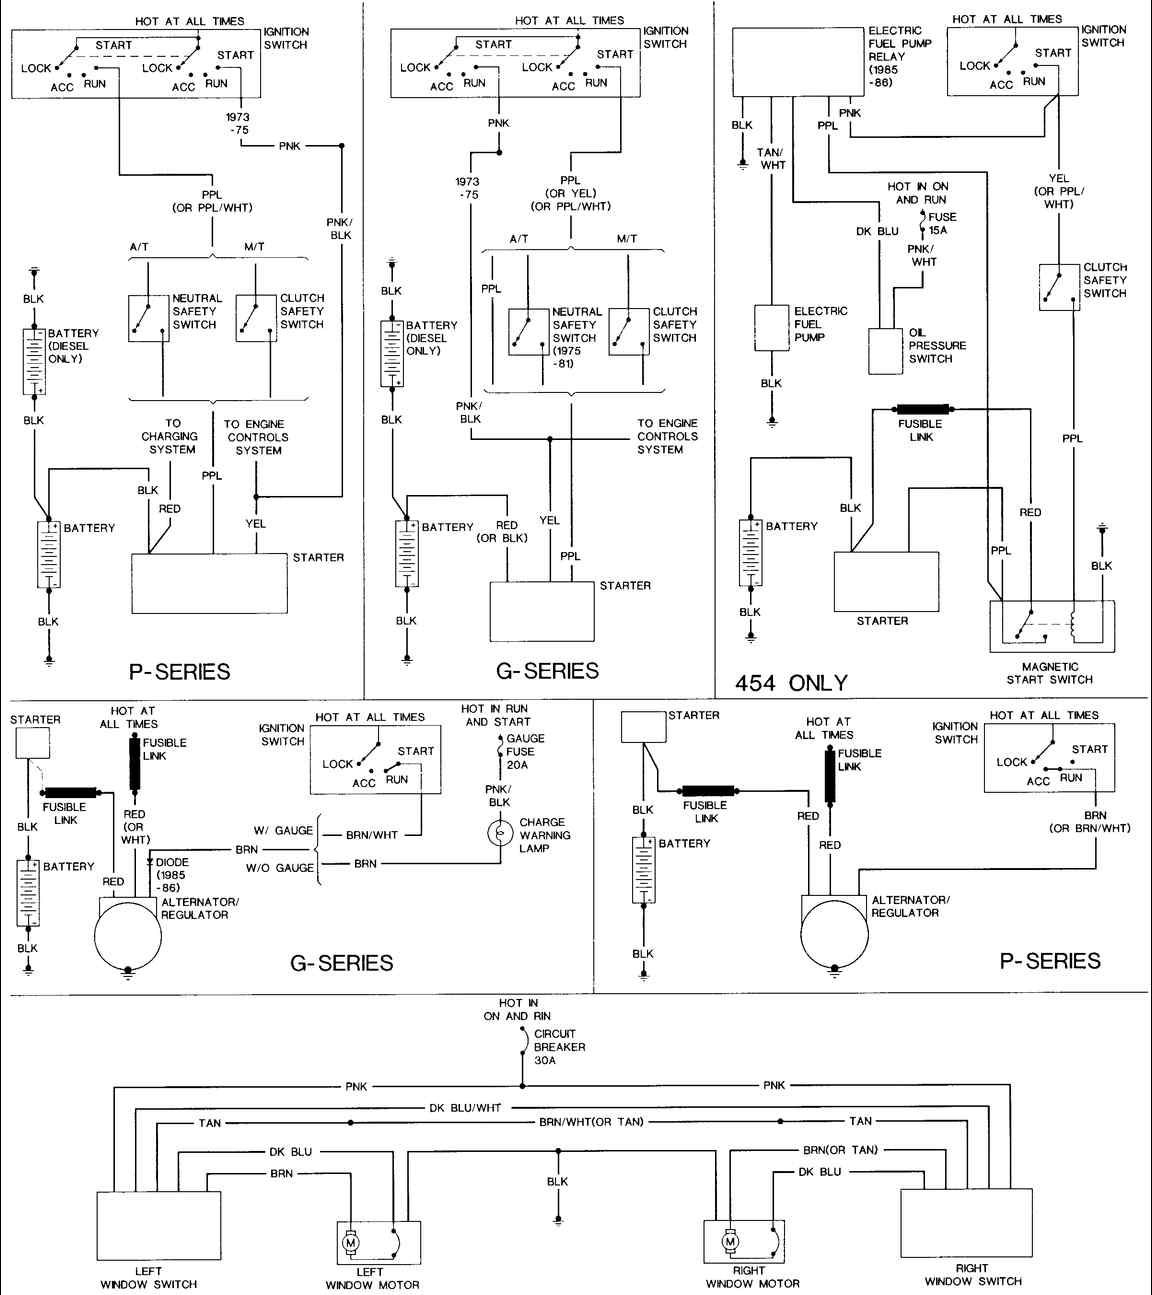 85 chevy truck wiring diagram 85 chevy van the steering column 85 chevy truck wiring diagram 85 chevy van the steering column and